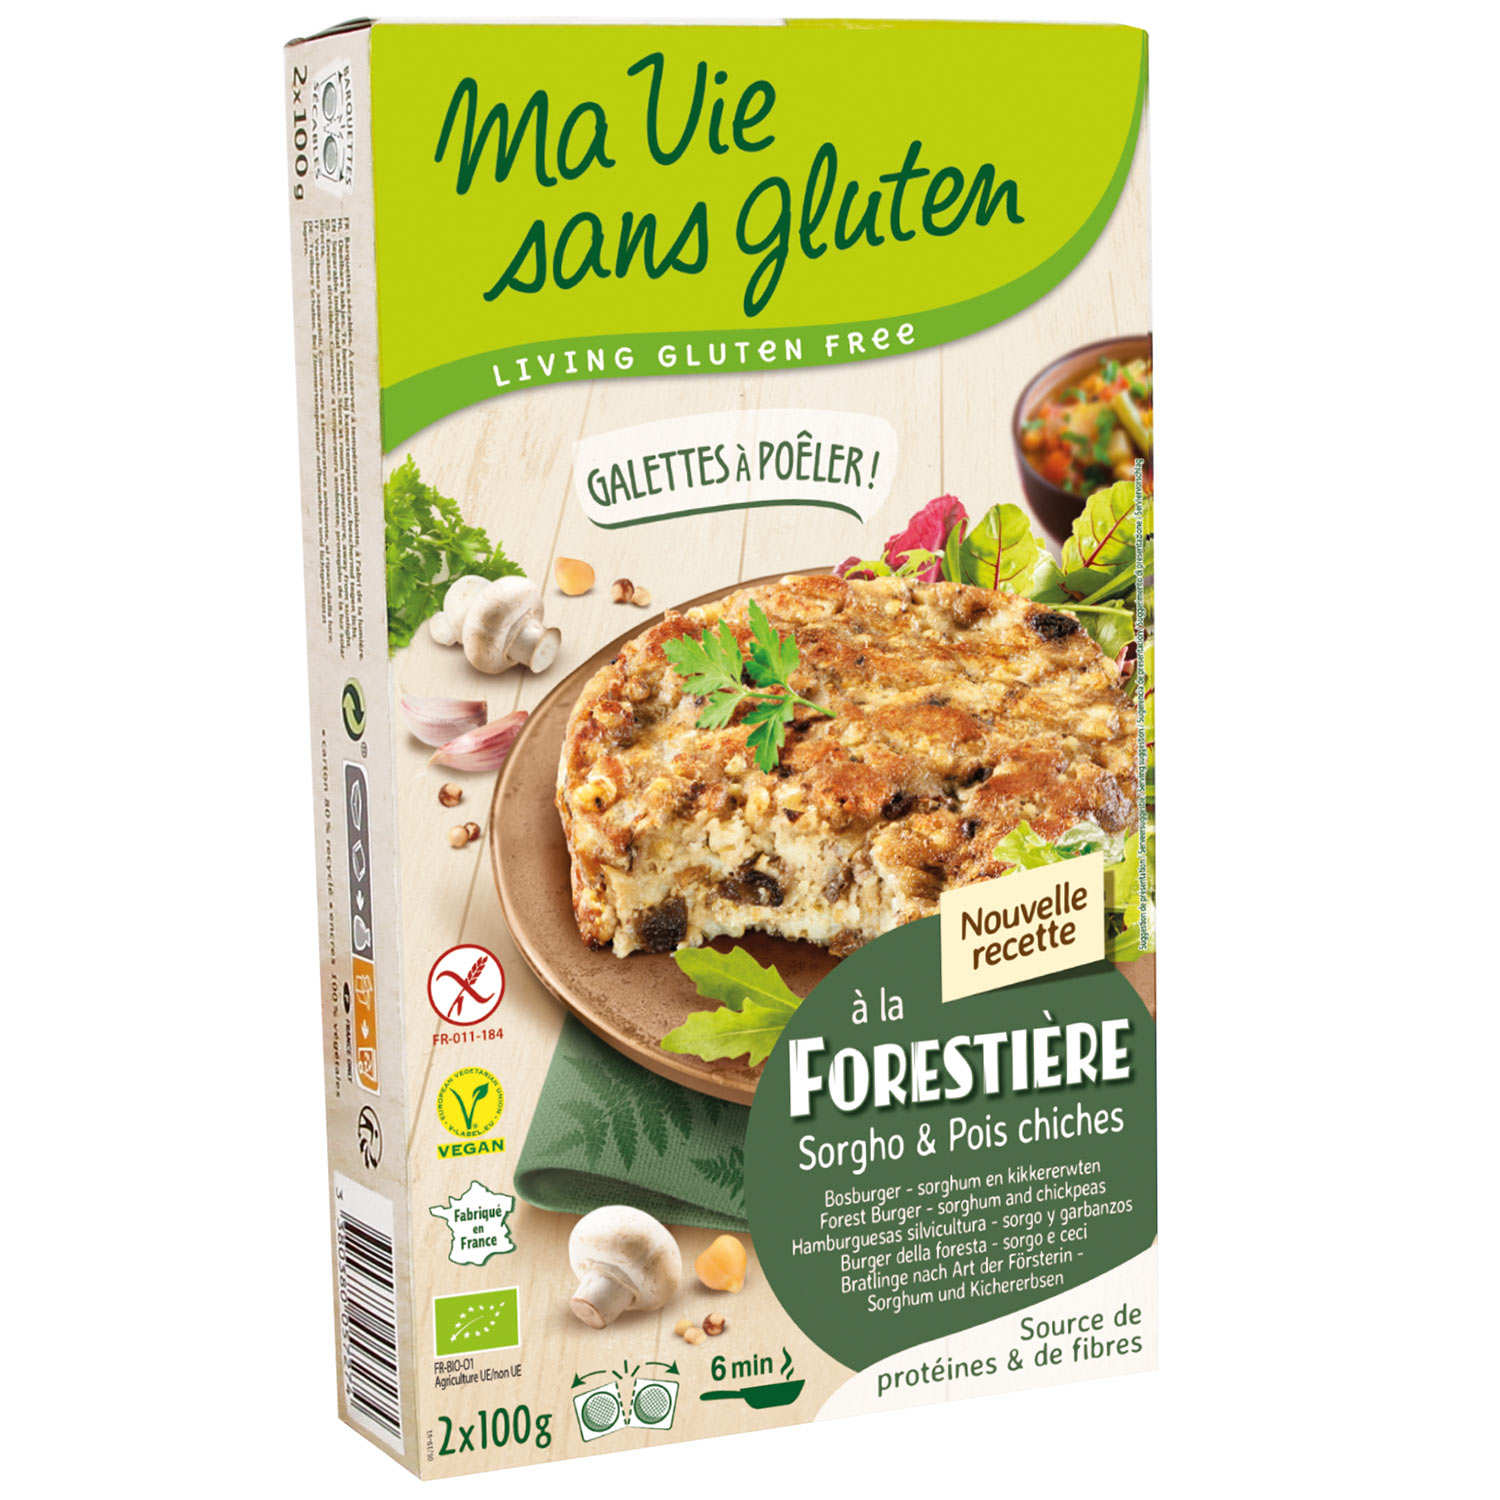 Organic Ready to cook mushroom and cheeck peas galette - gluten free